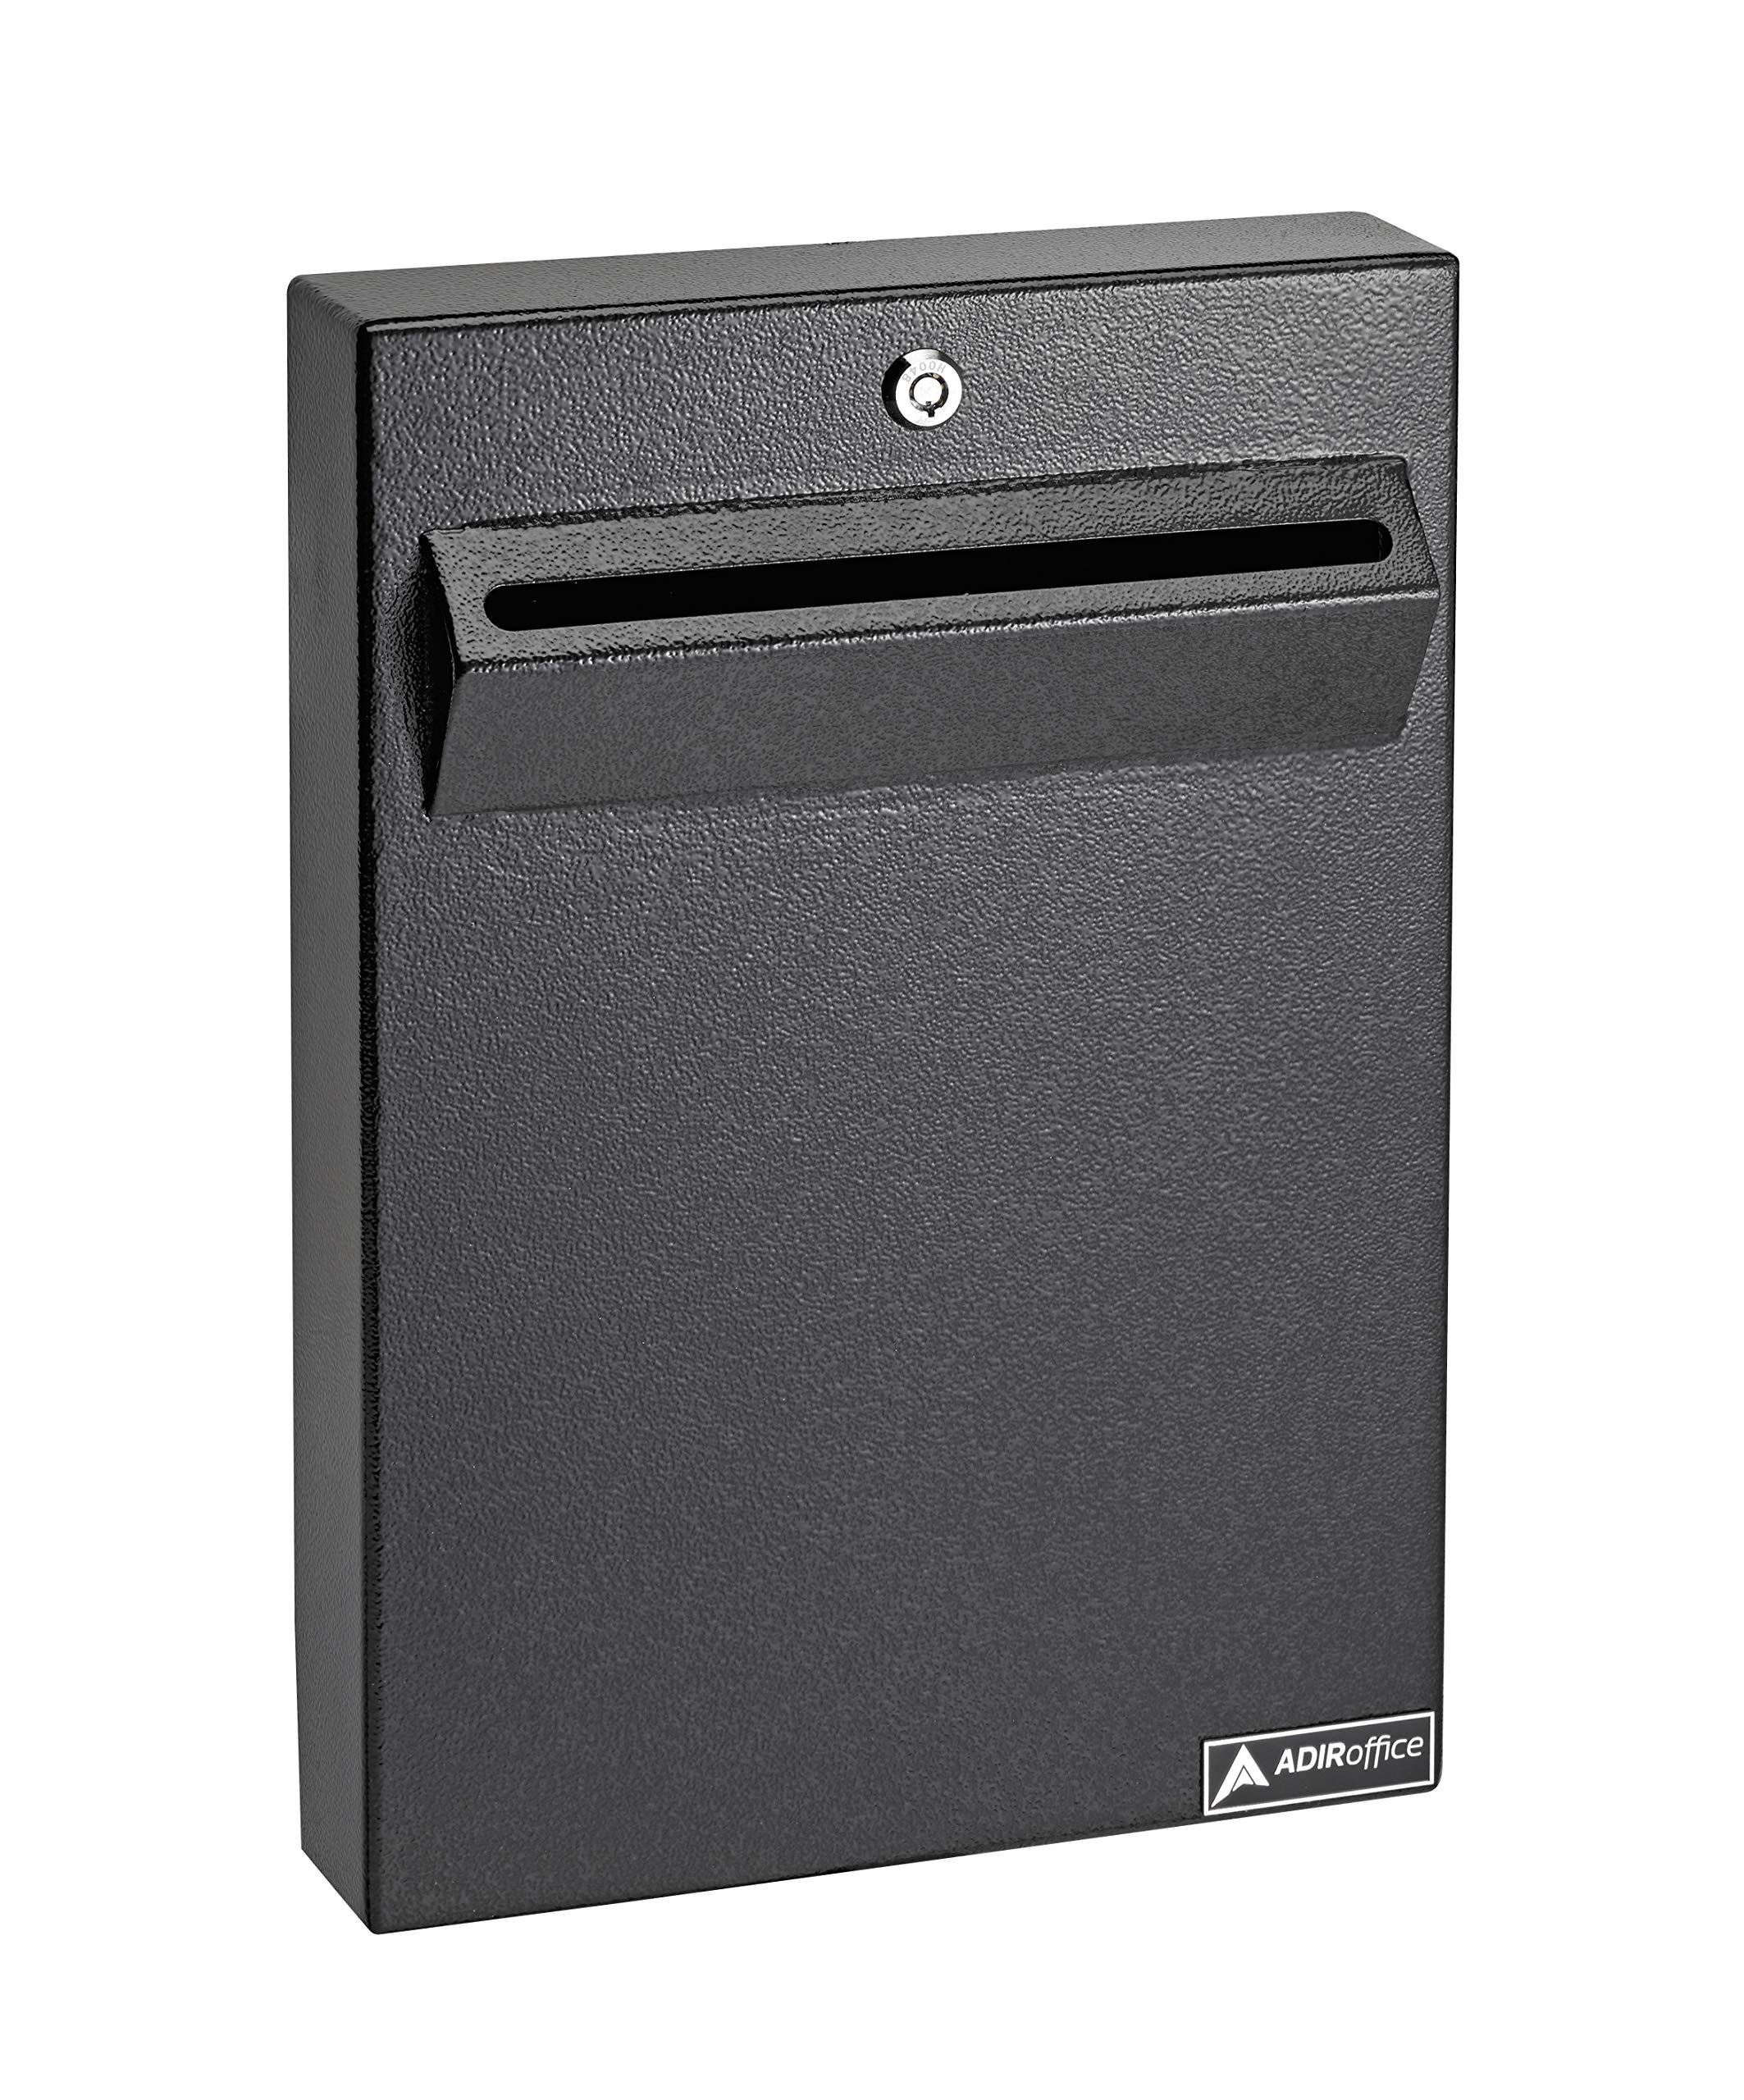 AdirOffice Wall Mount Drop Box - Heavy Duty Secured Storage with Lock - for Commercial Home Office or Business Use (Black) by AdirOffice